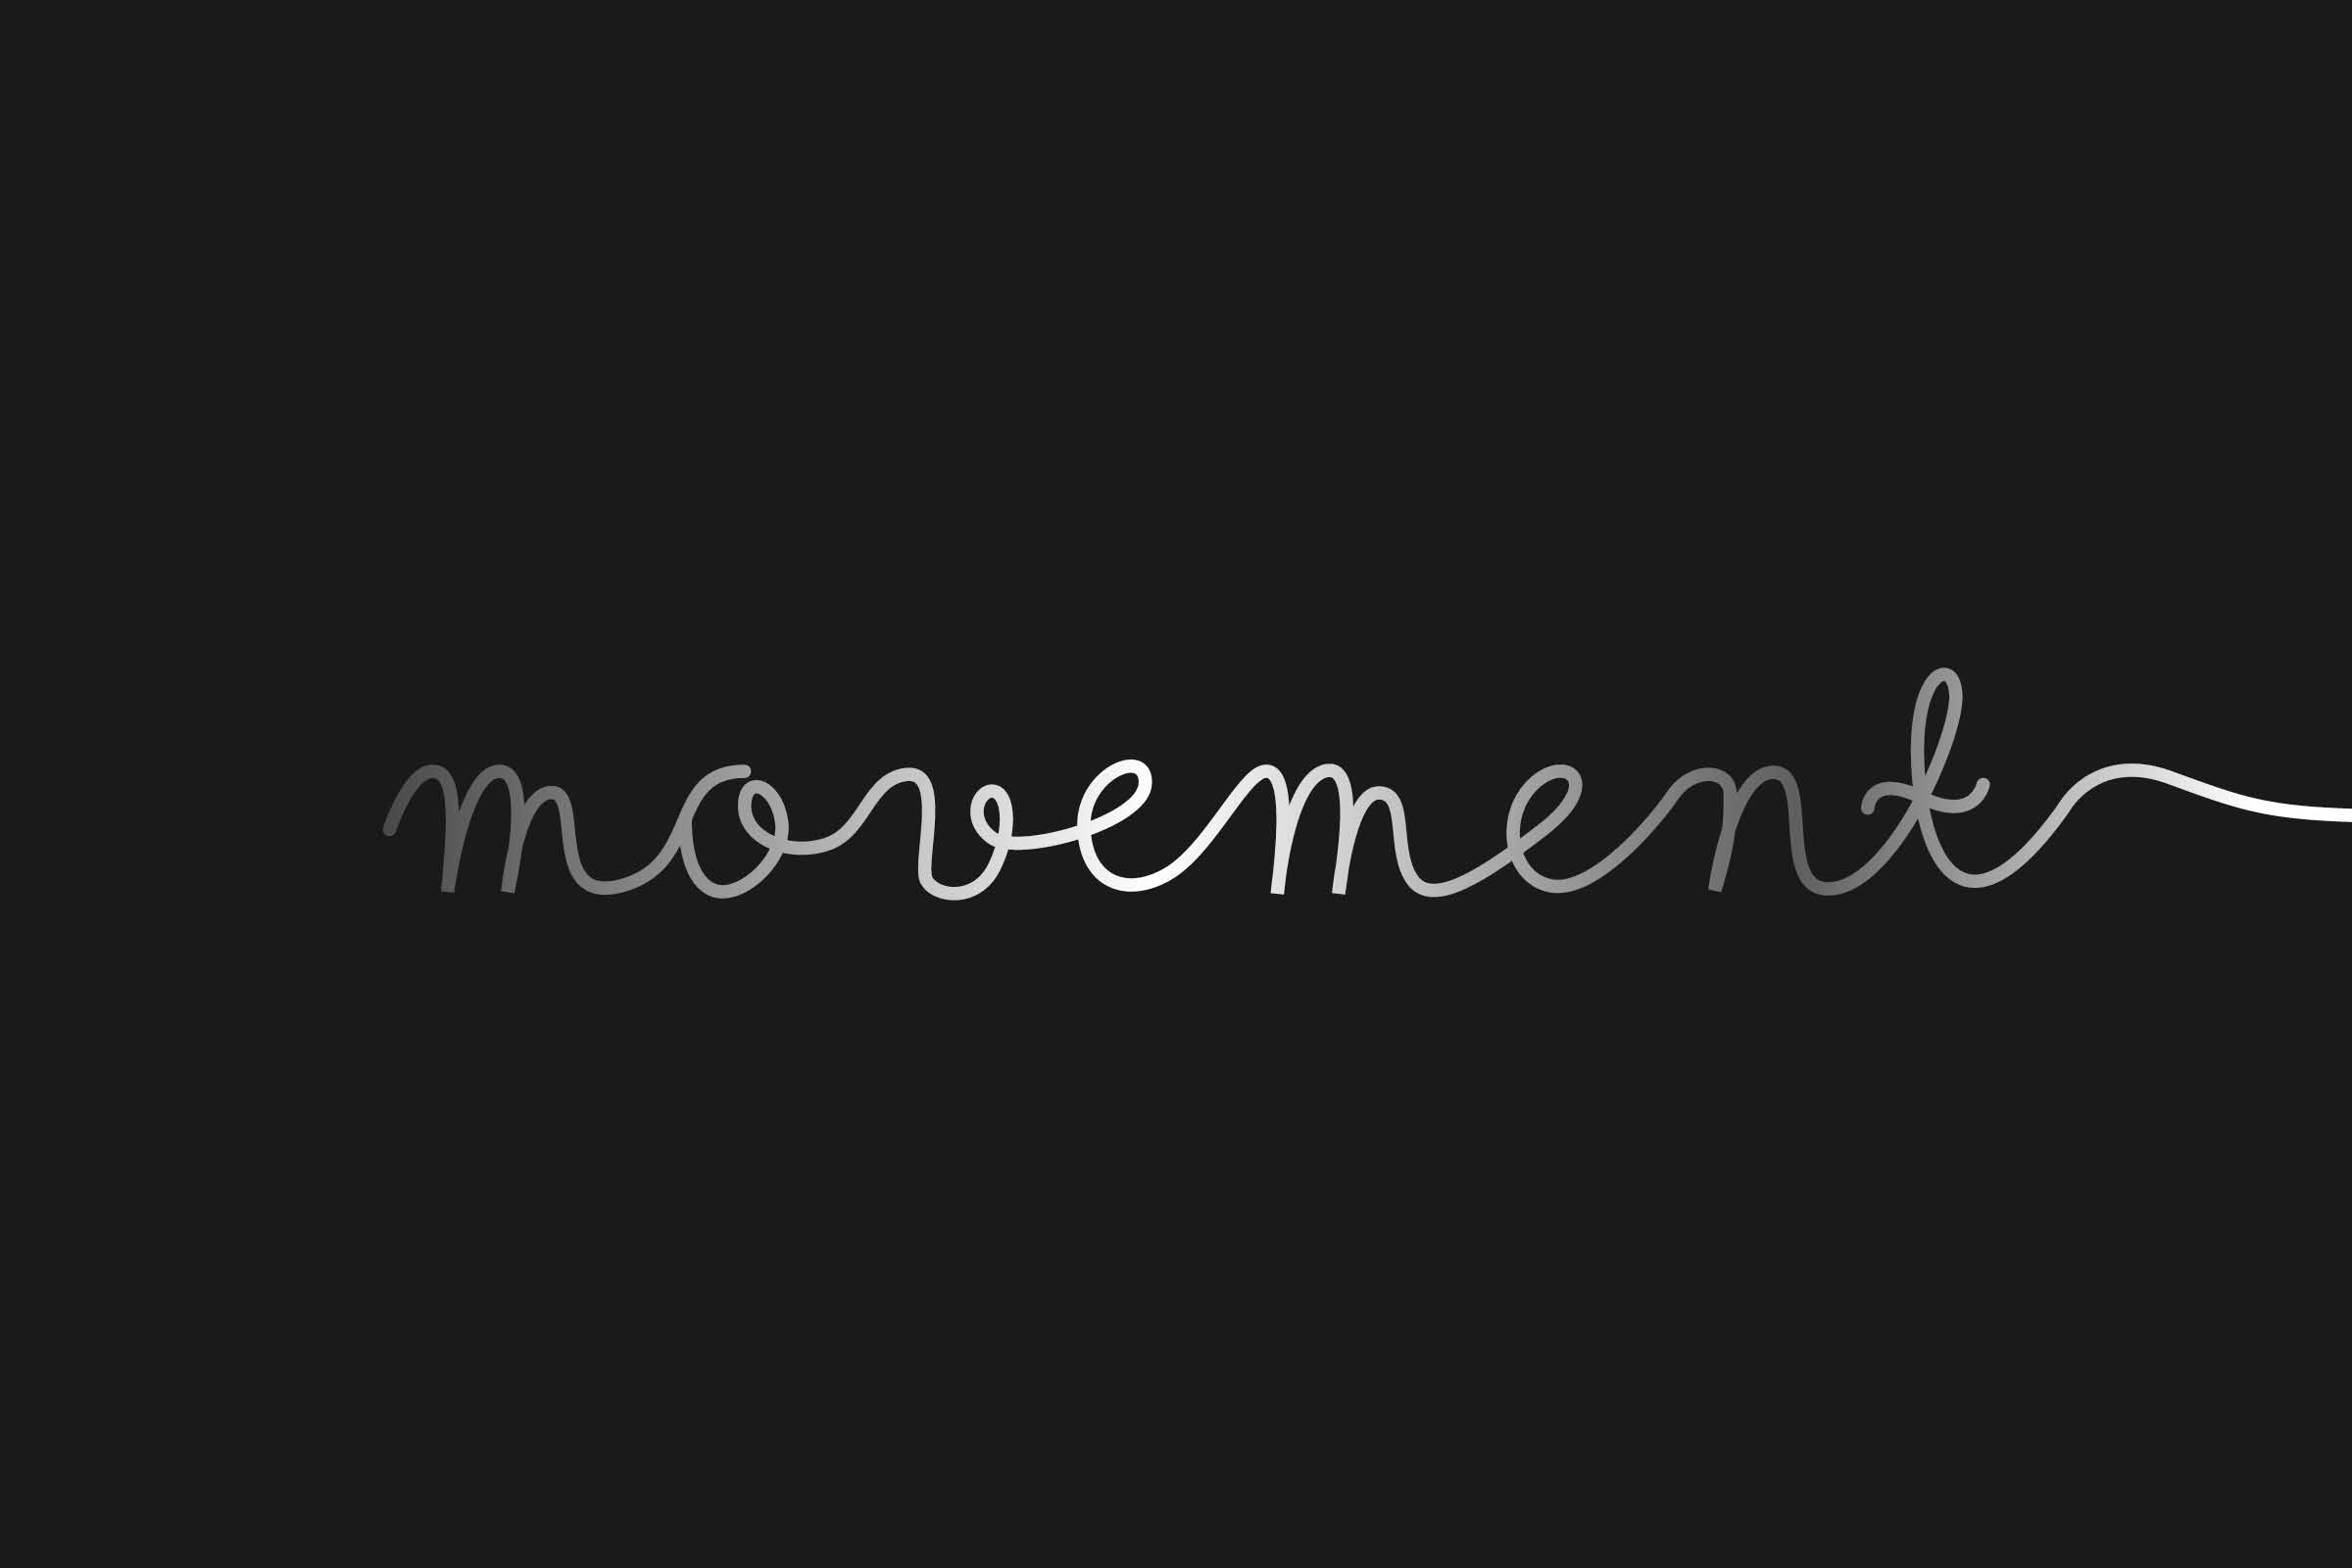 logo design for the movement flyers